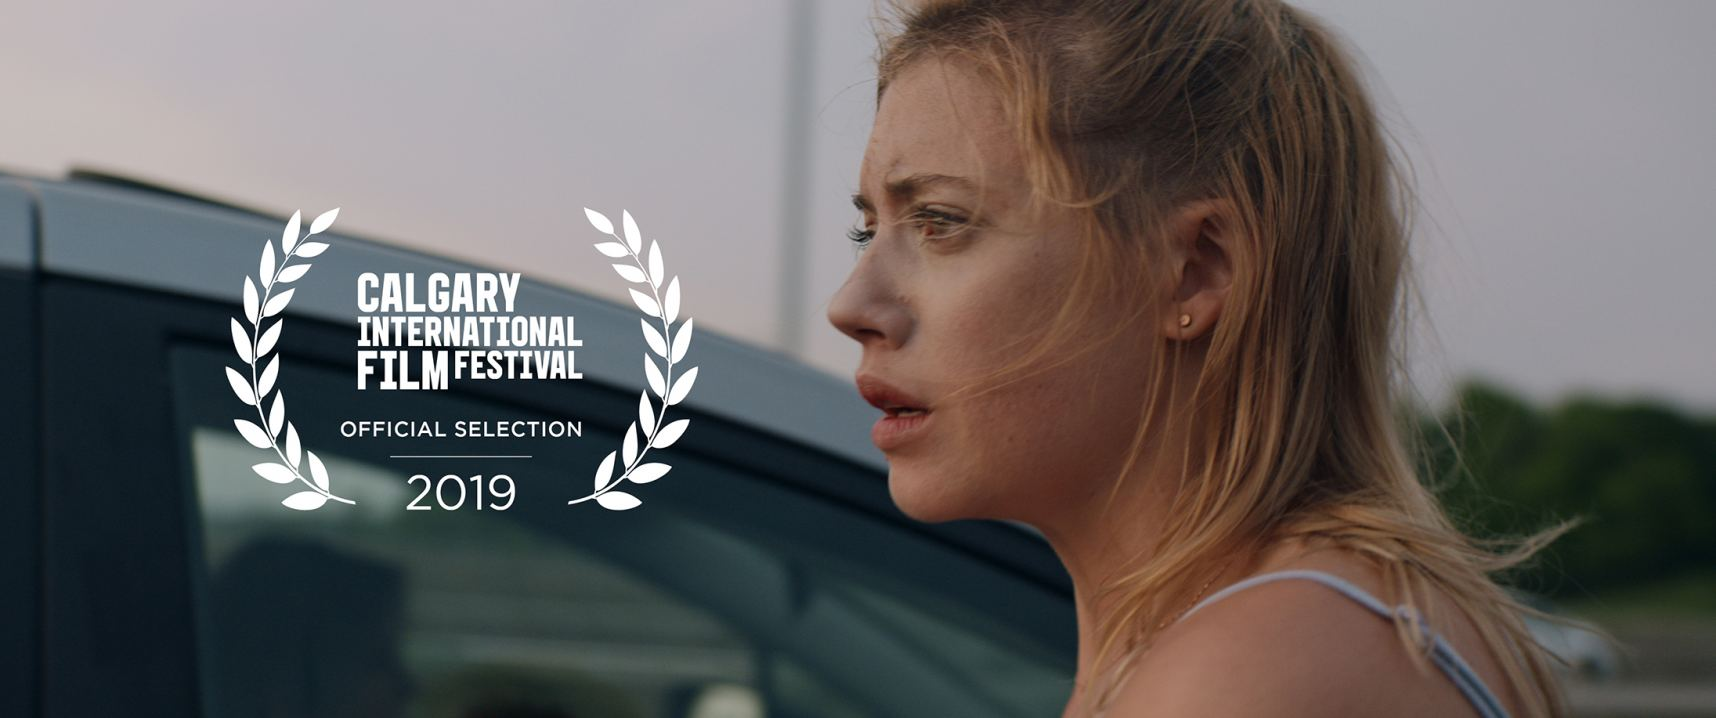 Official Selection 20th Calgary International Film Festival - Standstill (2019)